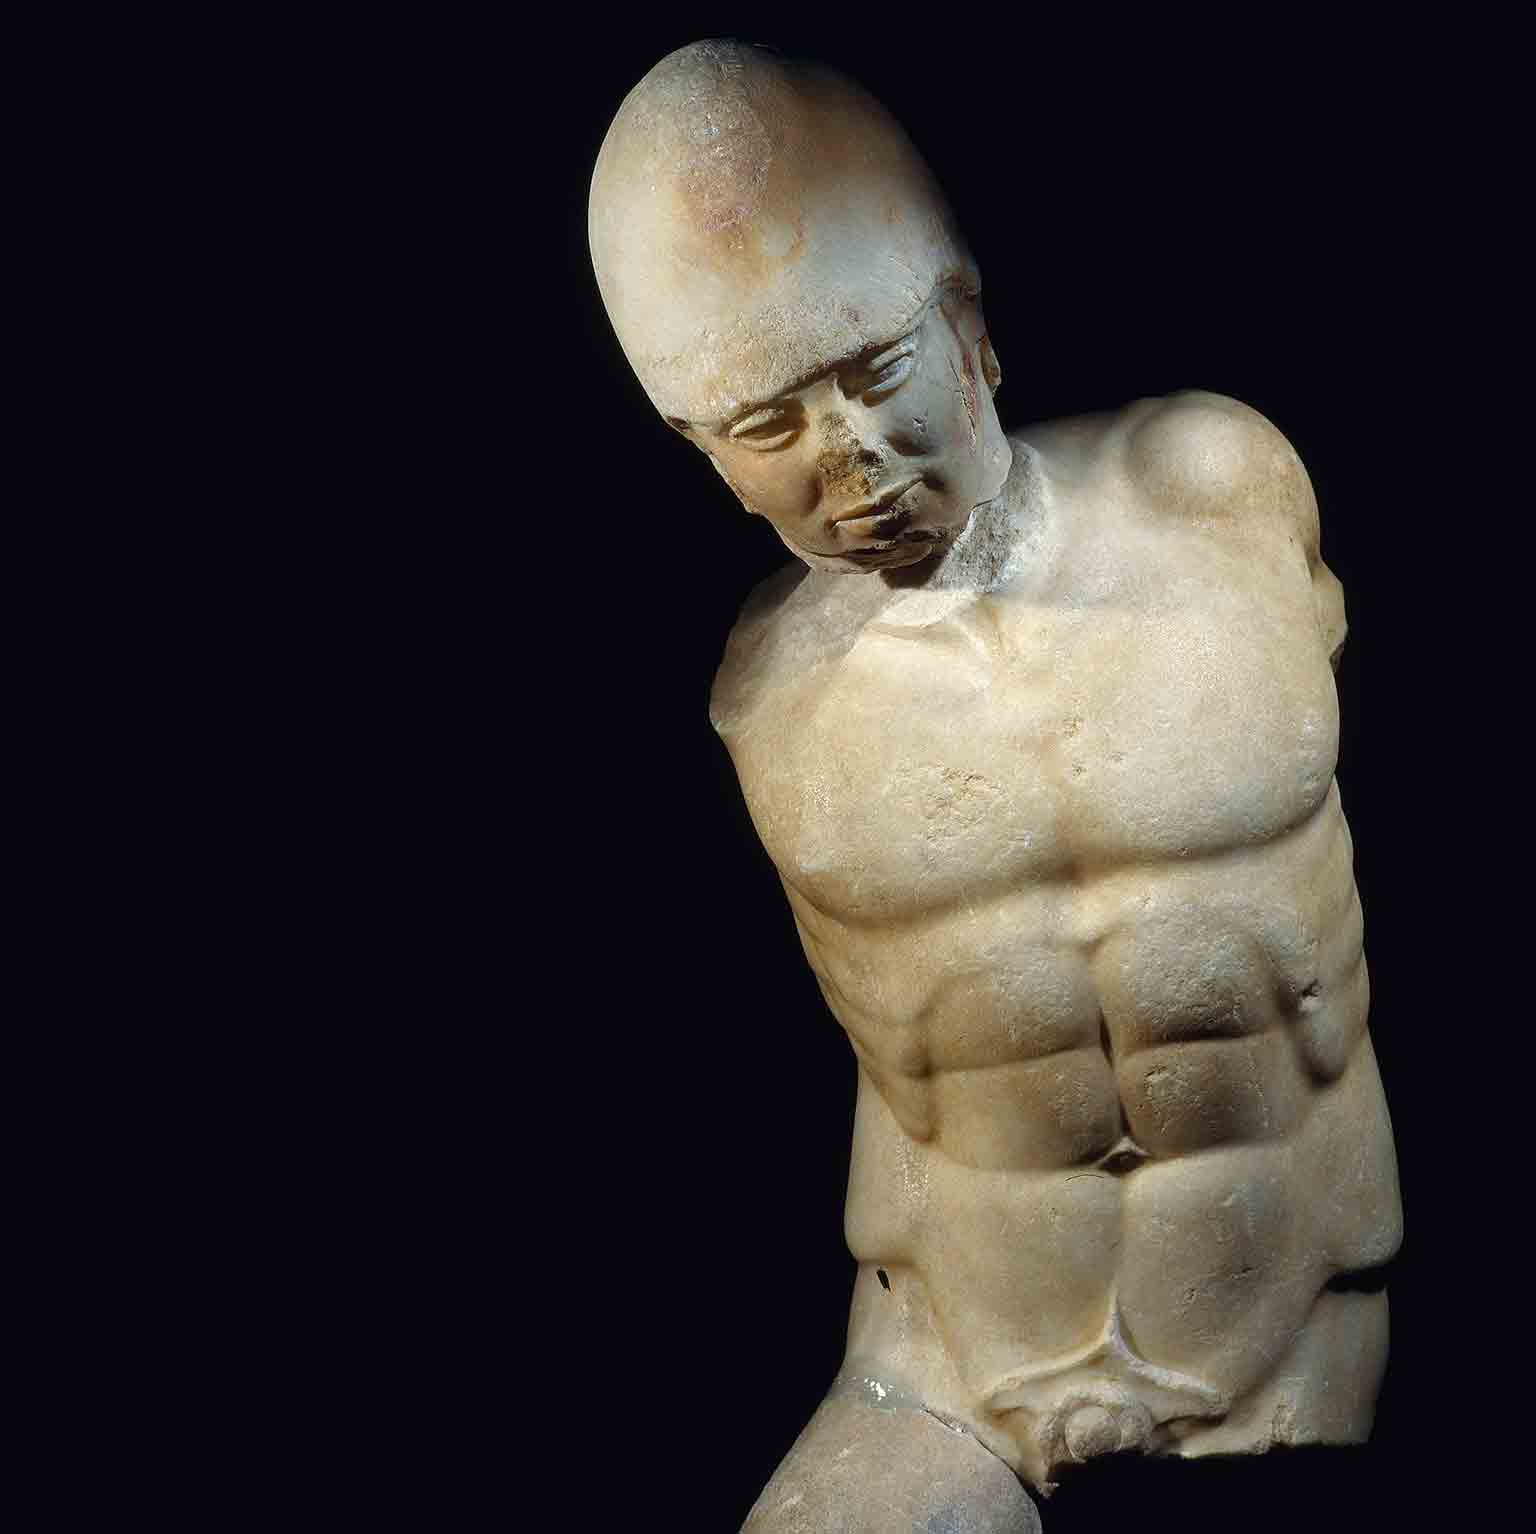 Marble statue of warrior, Akragas, c.470 BC